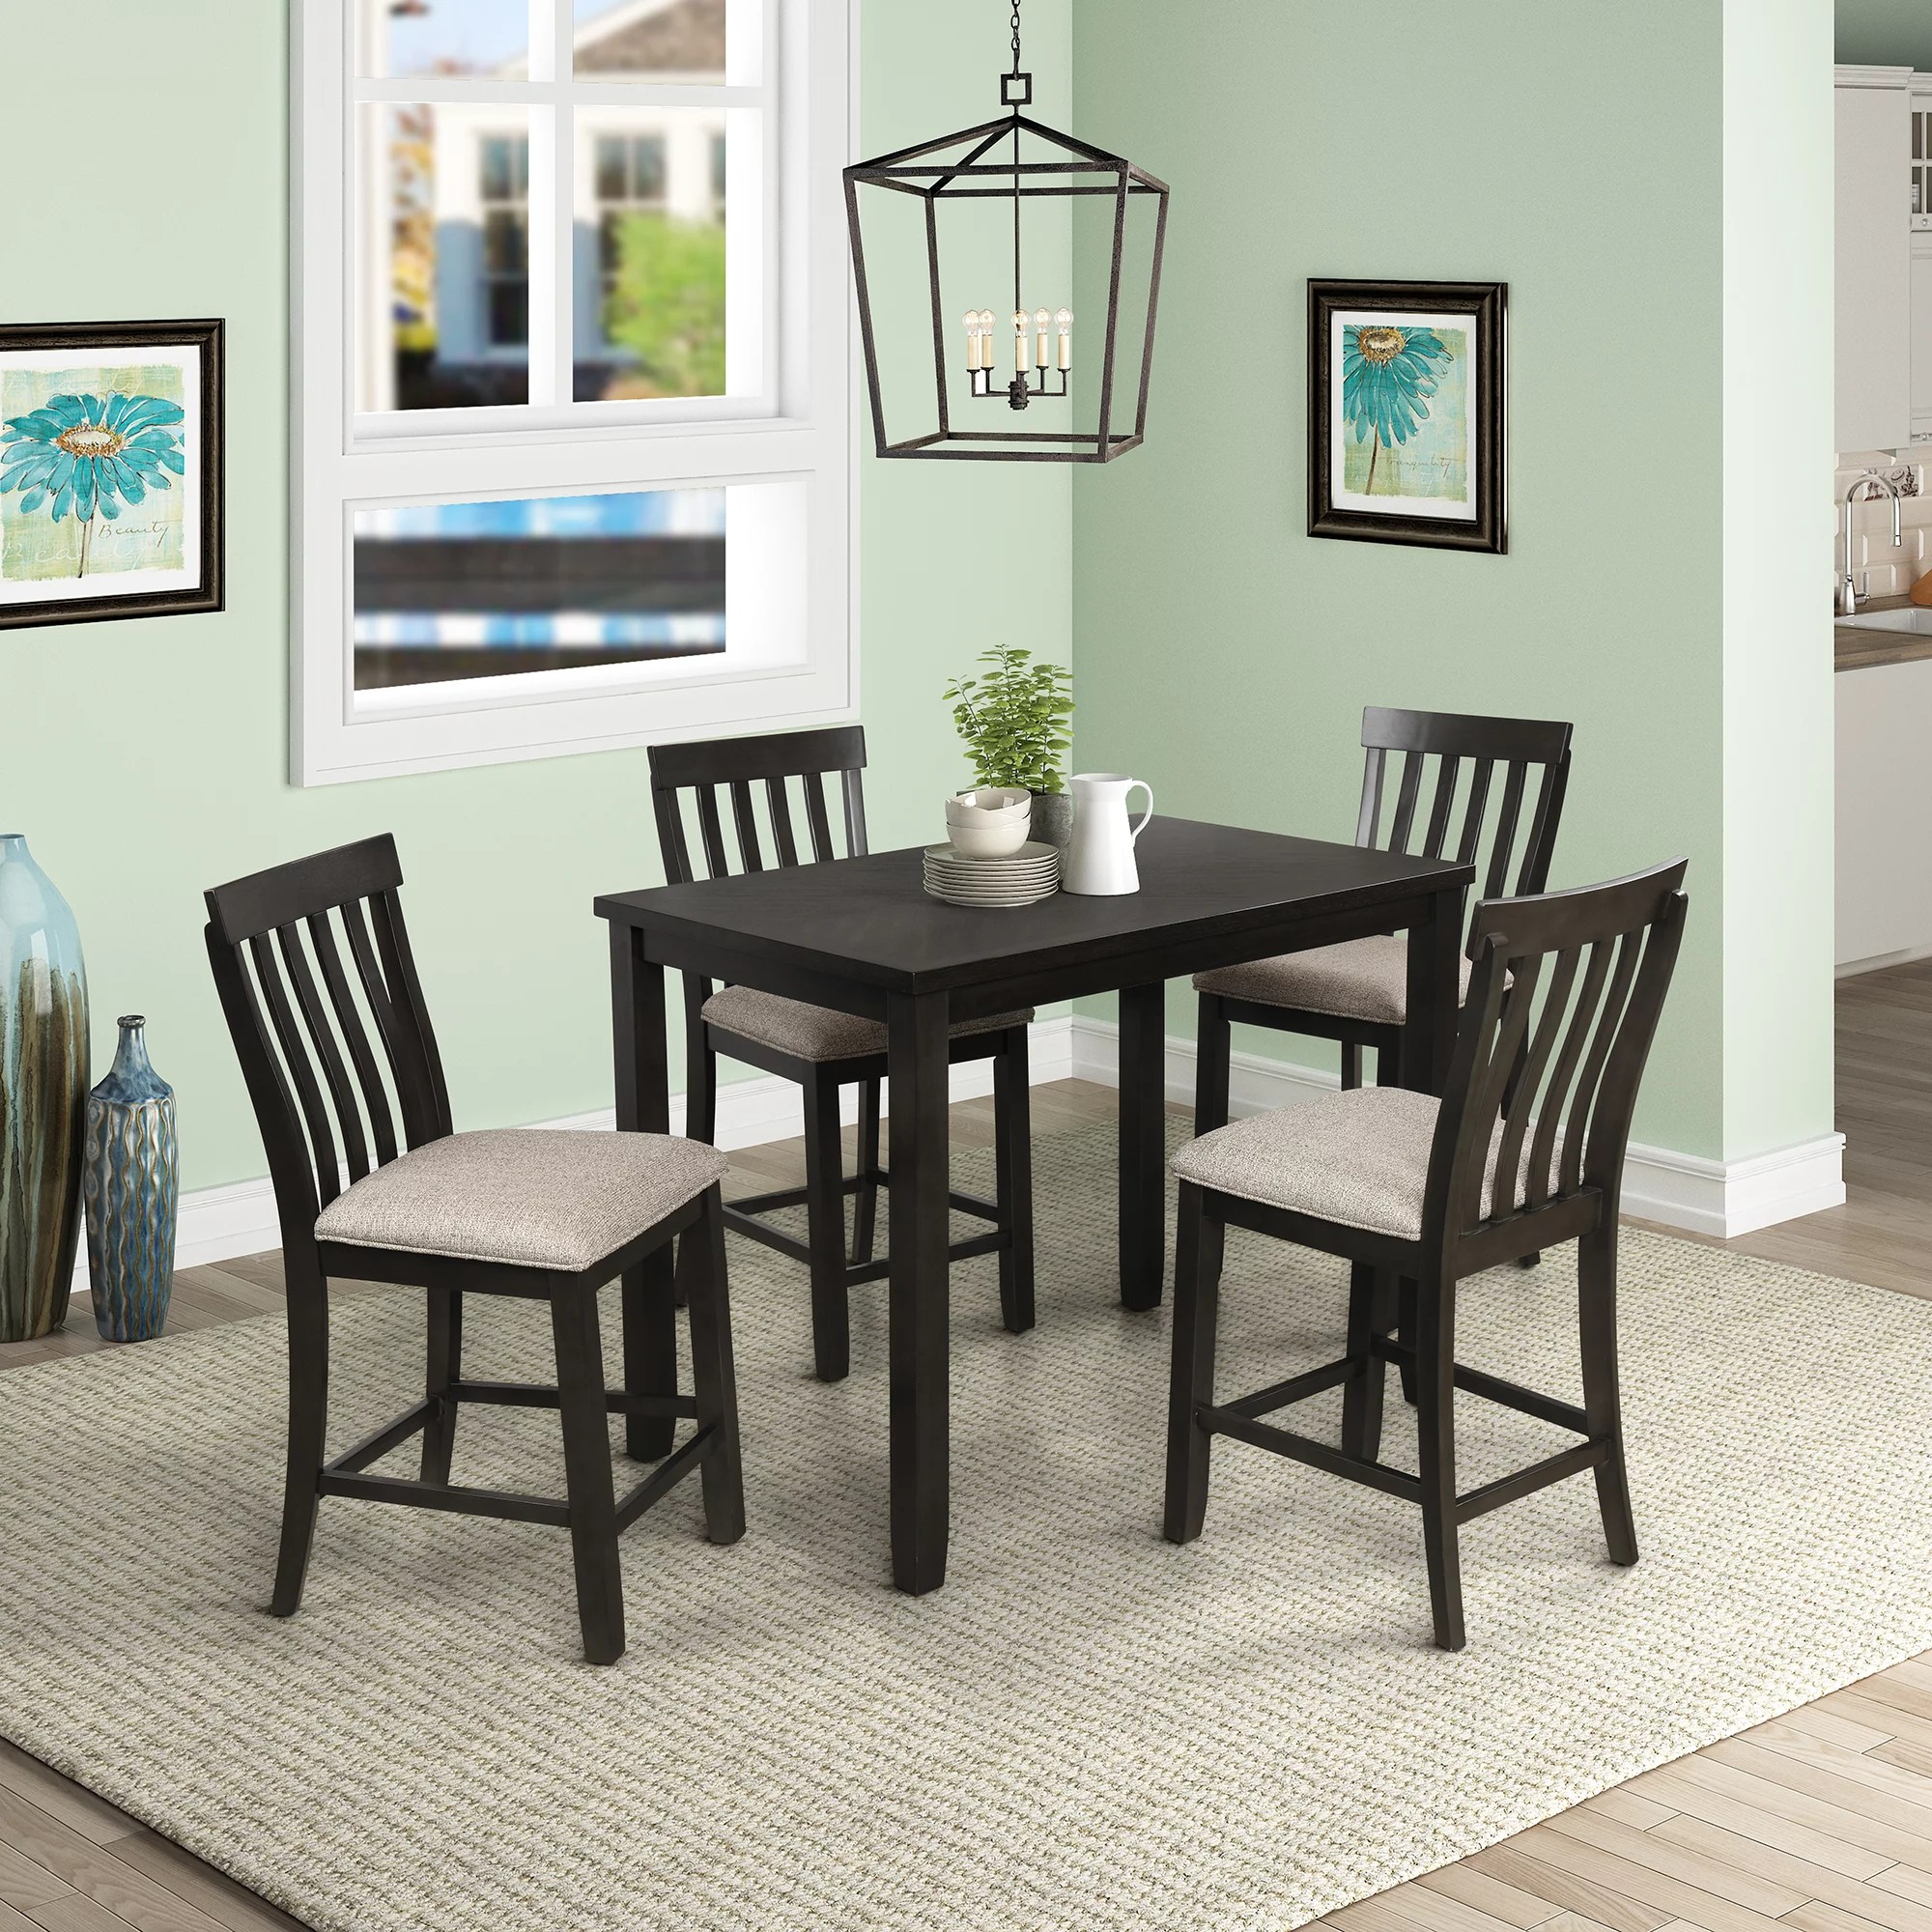 clearance 5 piece counter height dining set wooden on dining room sets on clearance id=74414